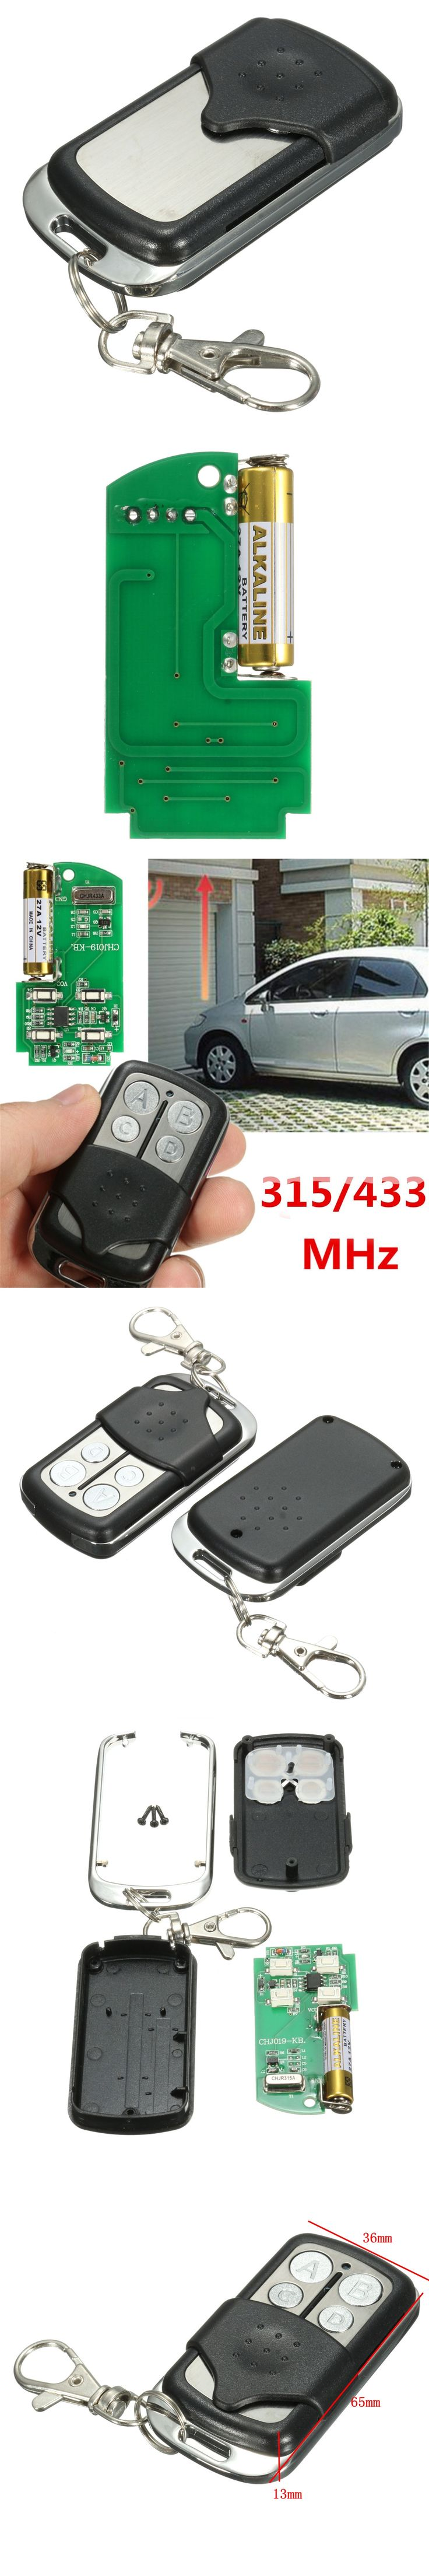 Universal 27A 12V 4-Channel 433 315 MHz Gate Garage Door Opener Remote Control Key